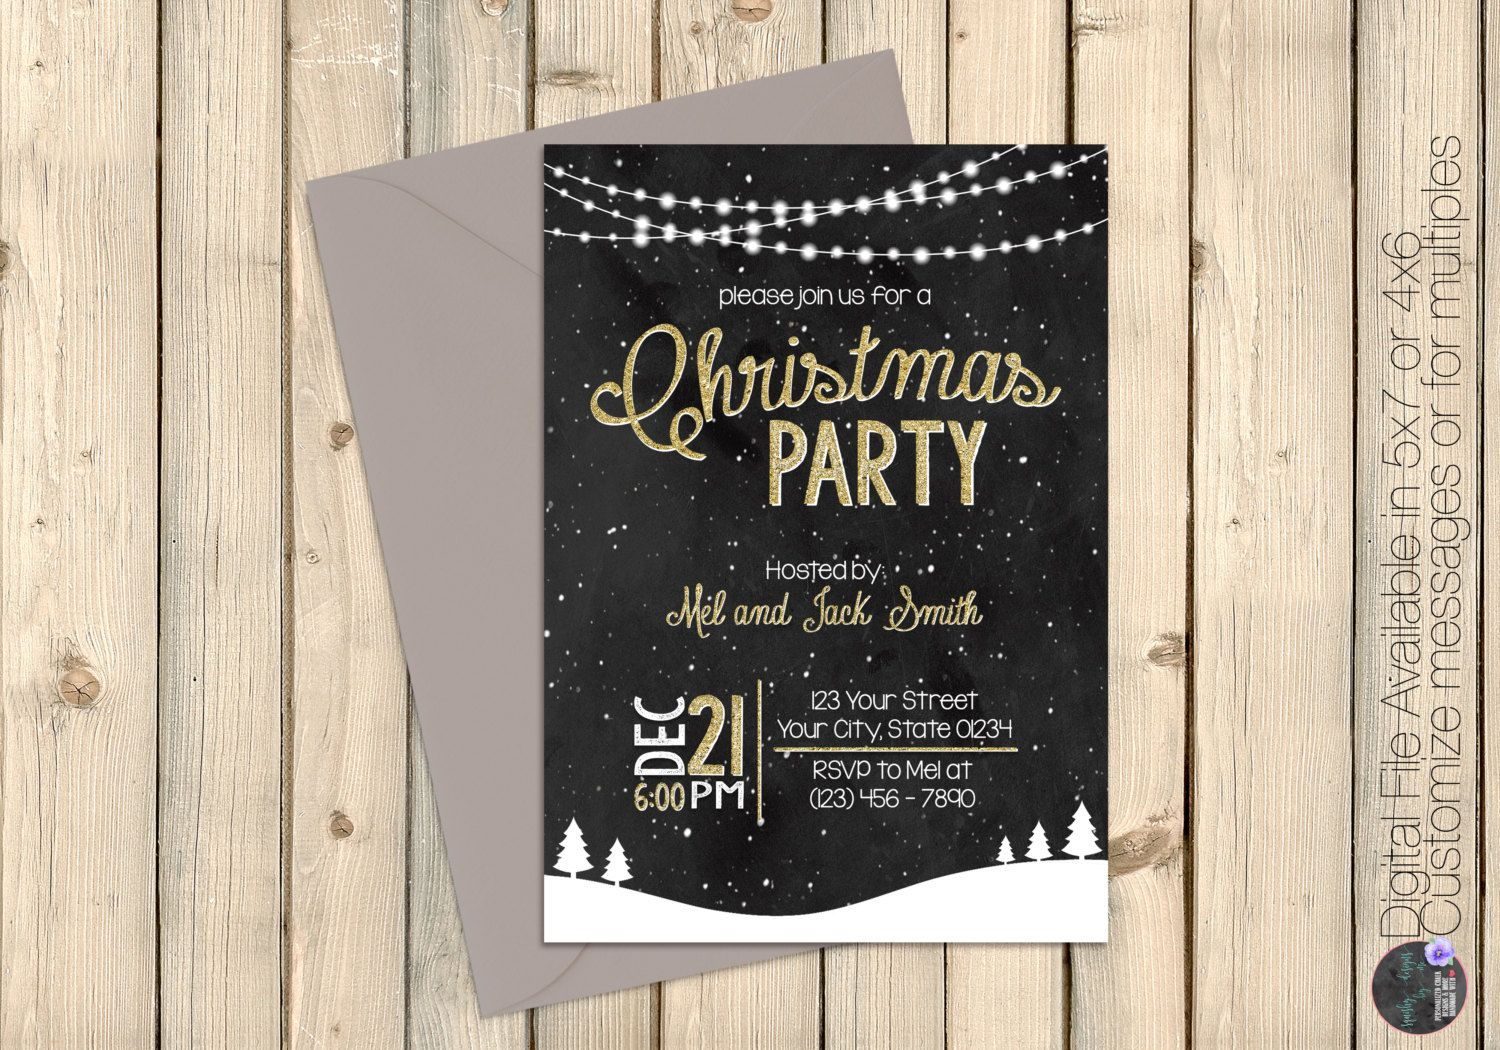 Christmas Party Invitation Holiday Party Invitation Etsy Holiday Party Invitations Christmas Party Invitations Printed Invitations